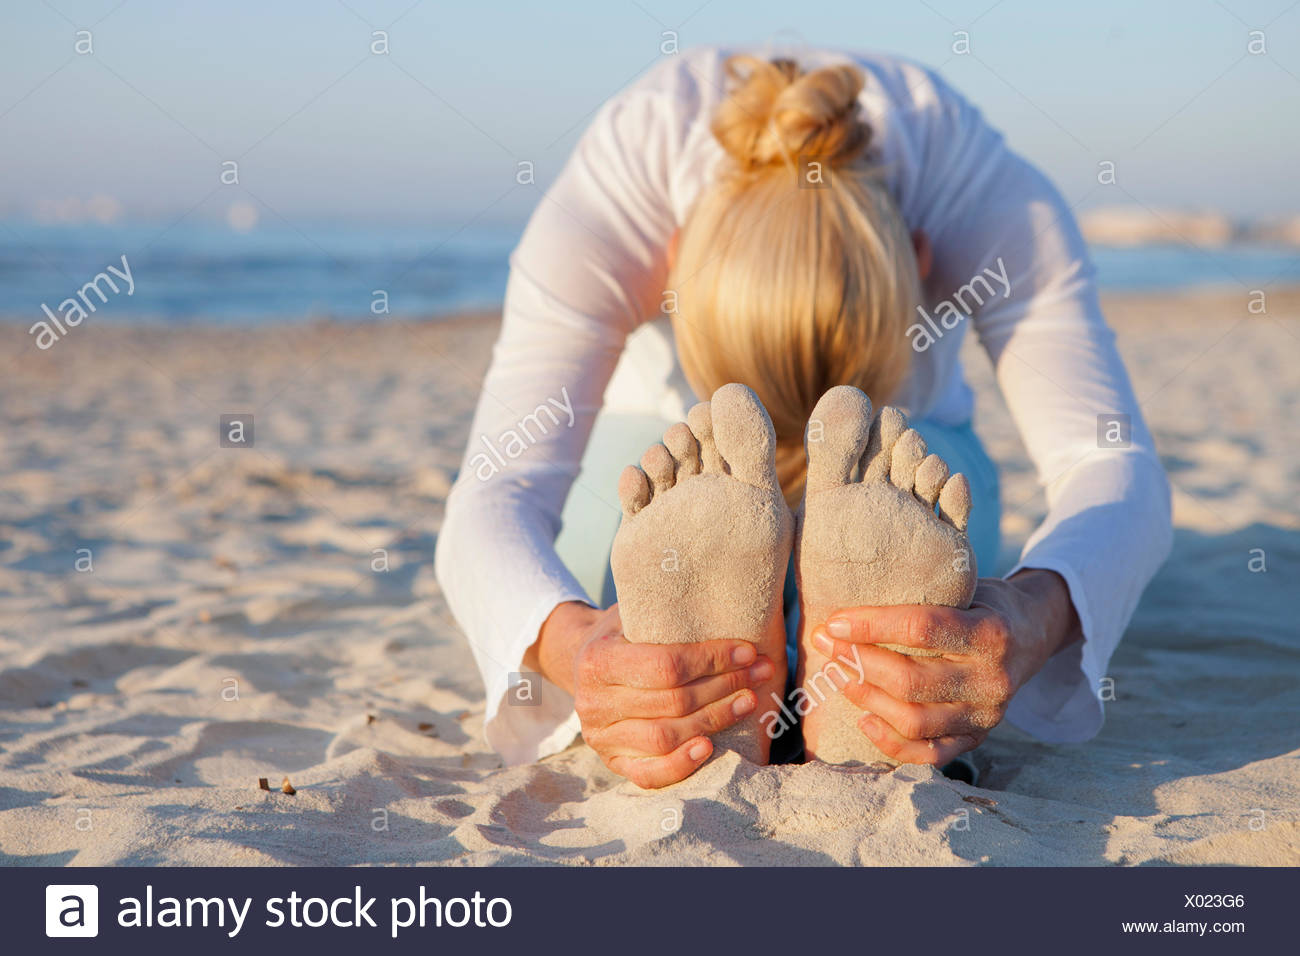 Woman doing yoga prayer stretch on the beach - Stock Image